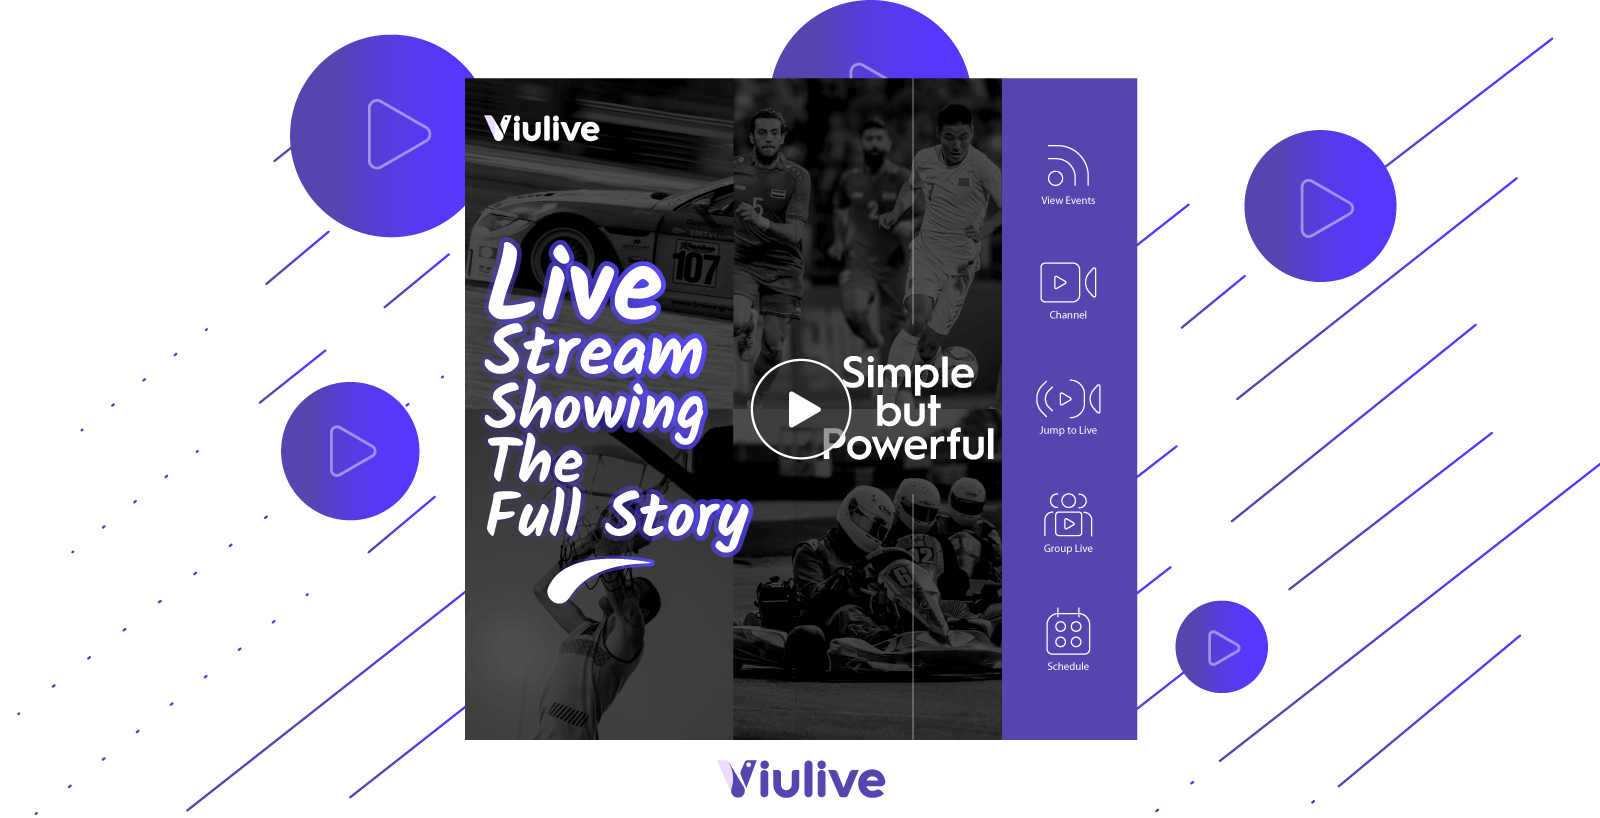 Viulive